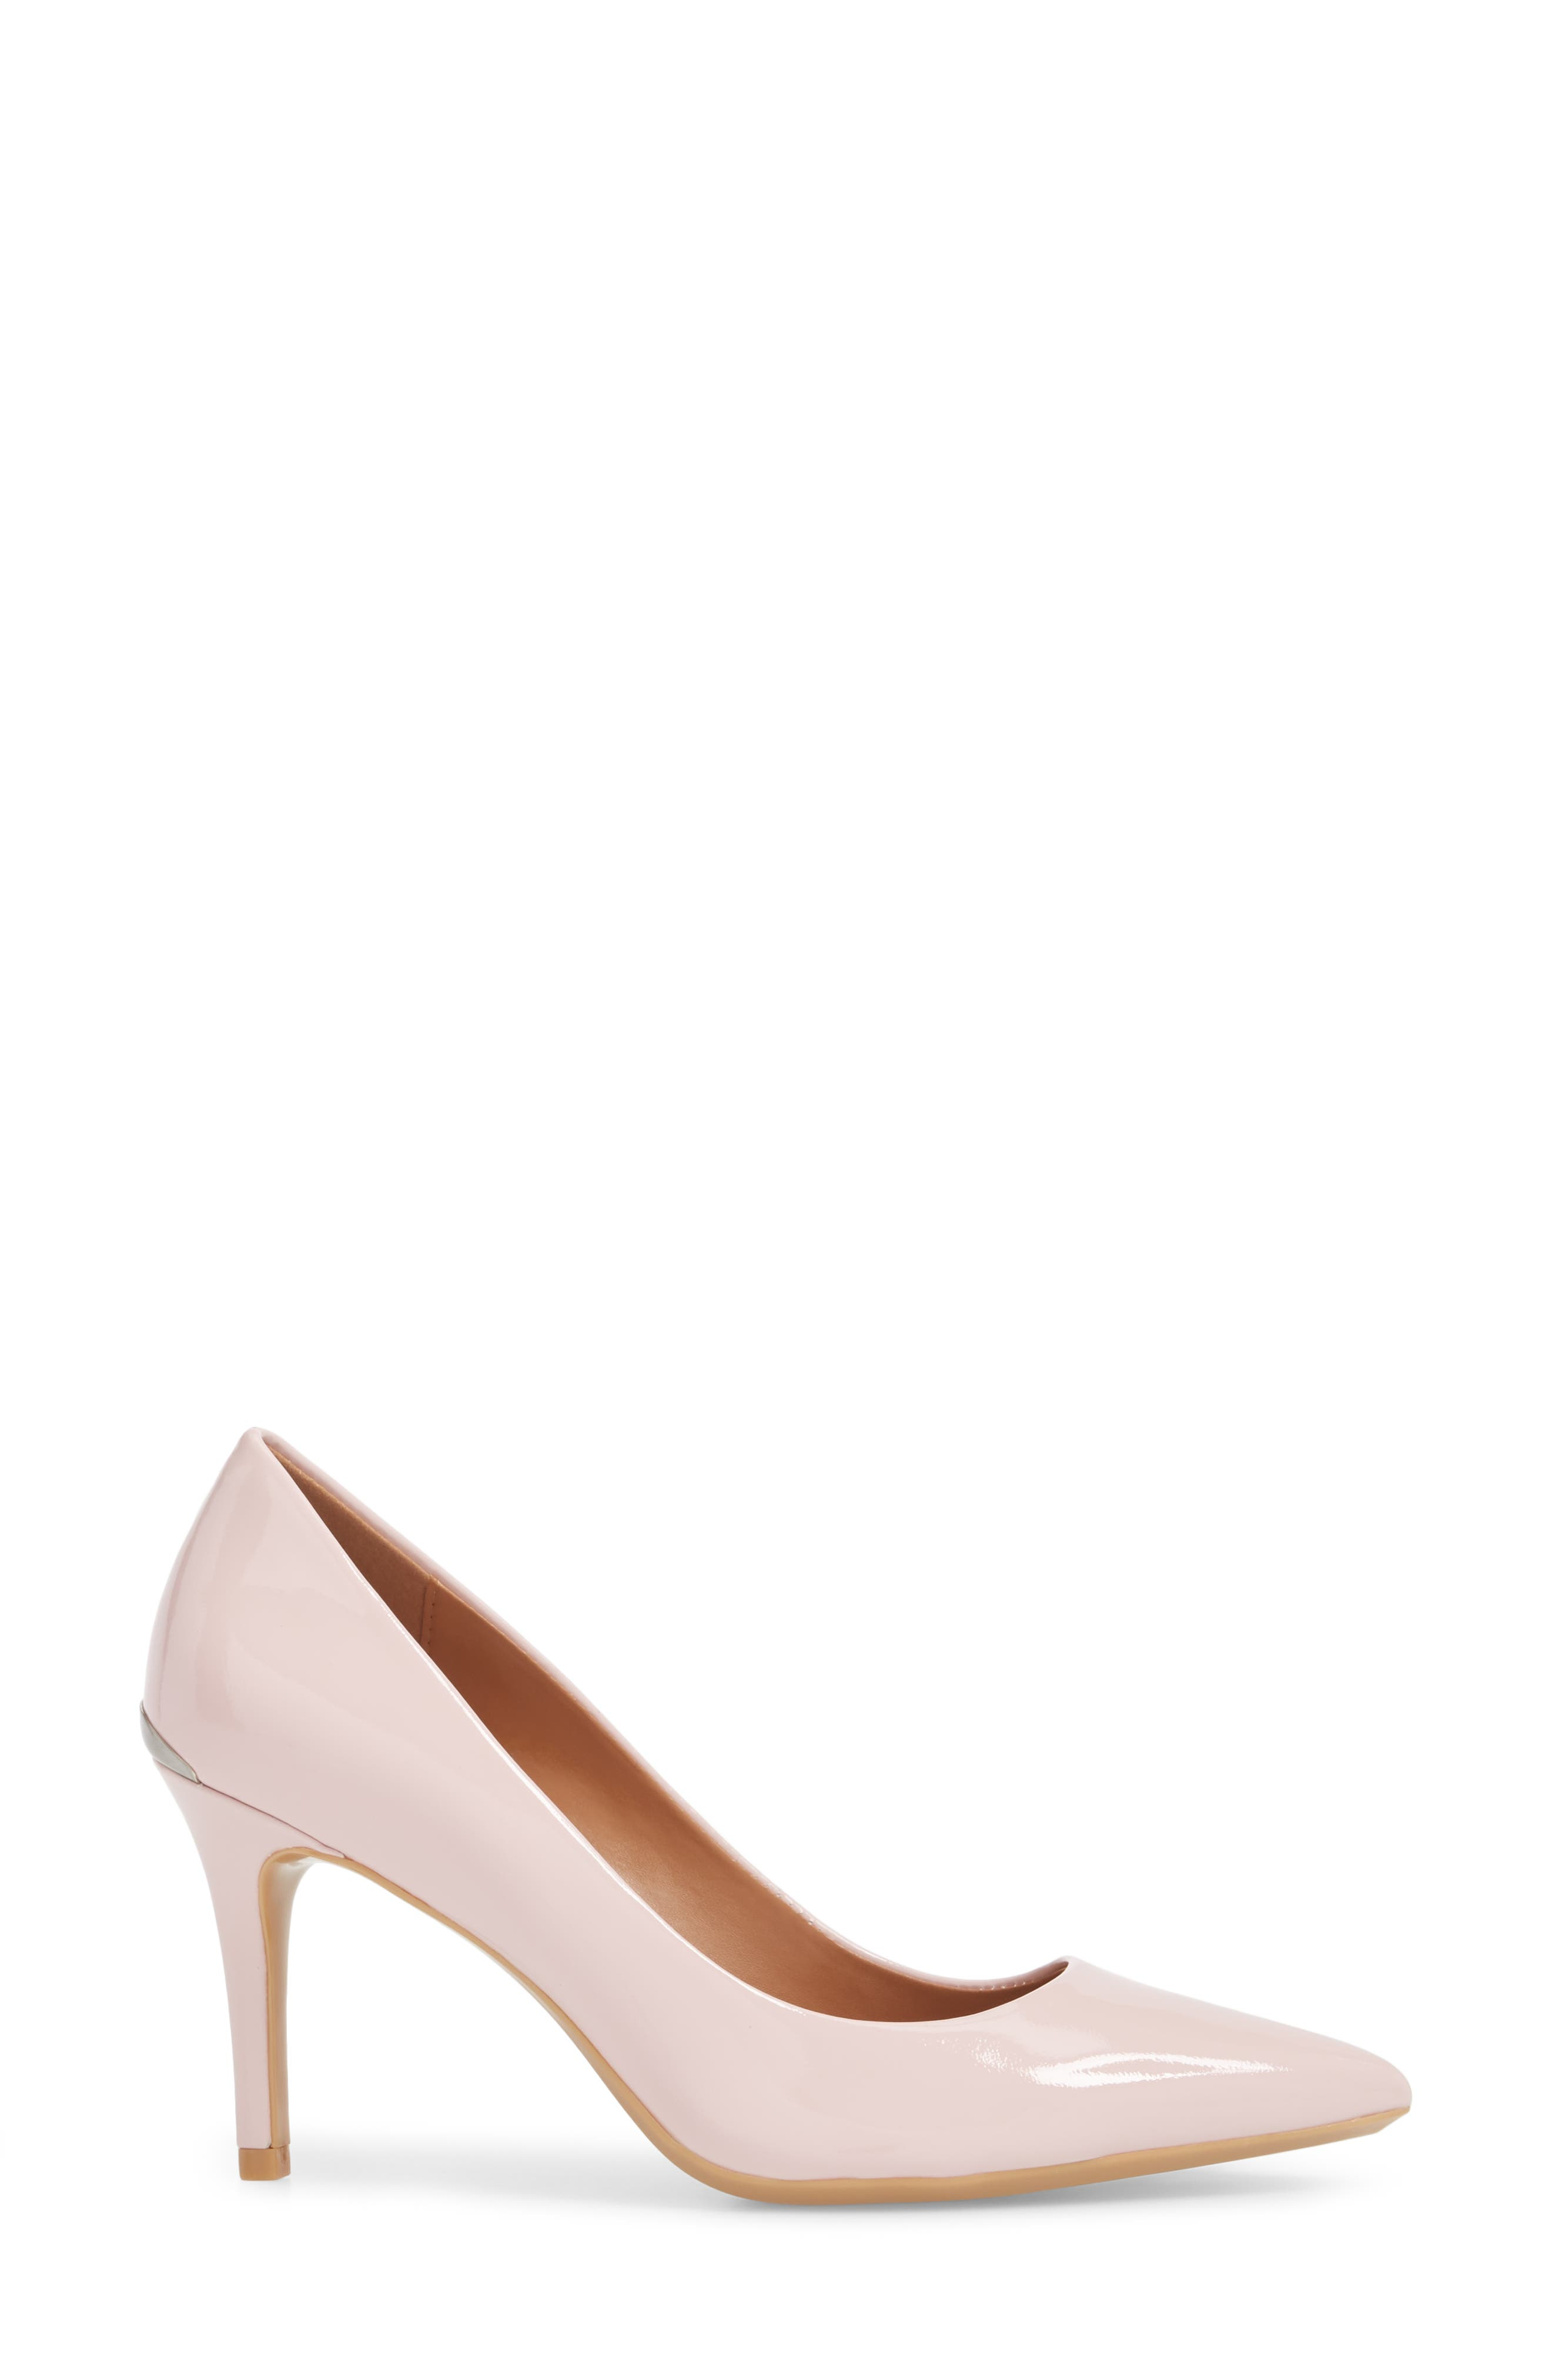 'Gayle' Pointy Toe Pump,                             Alternate thumbnail 3, color,                             Petal Pink Leather